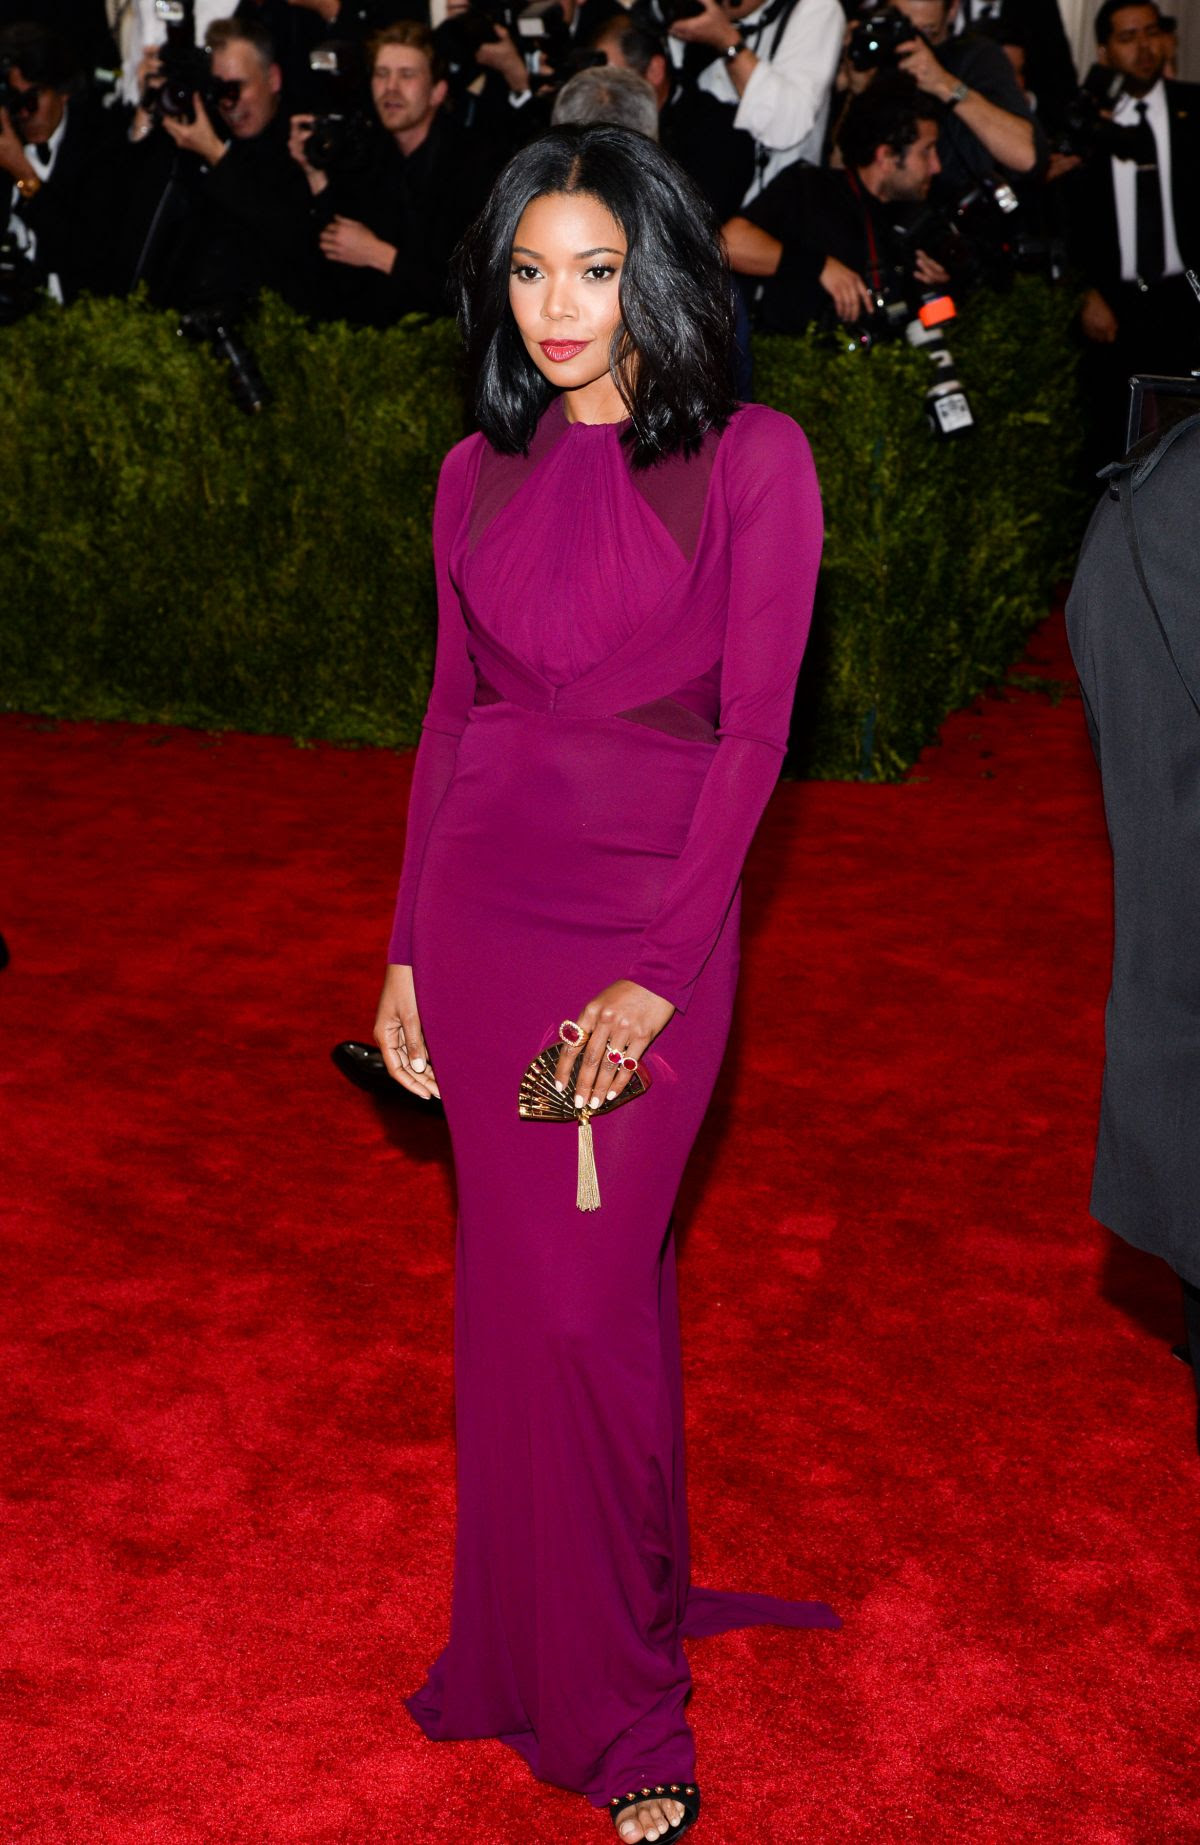 GABRIELLE UNION at MET Gala 2015 in New York